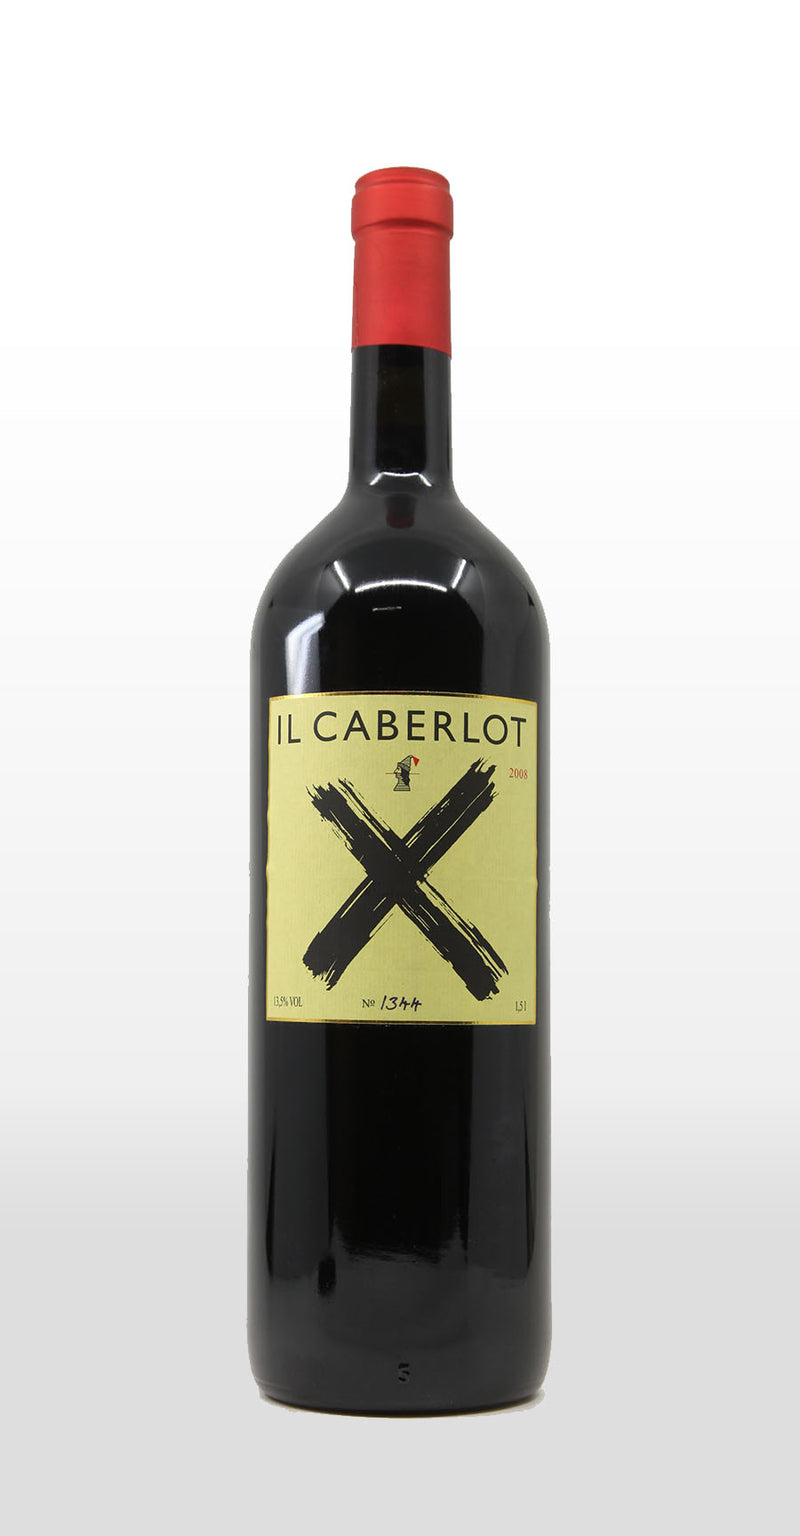 PODERE IL CARNASCIALE TOSCANA IGT IL CABERLOT 2008 1500ML